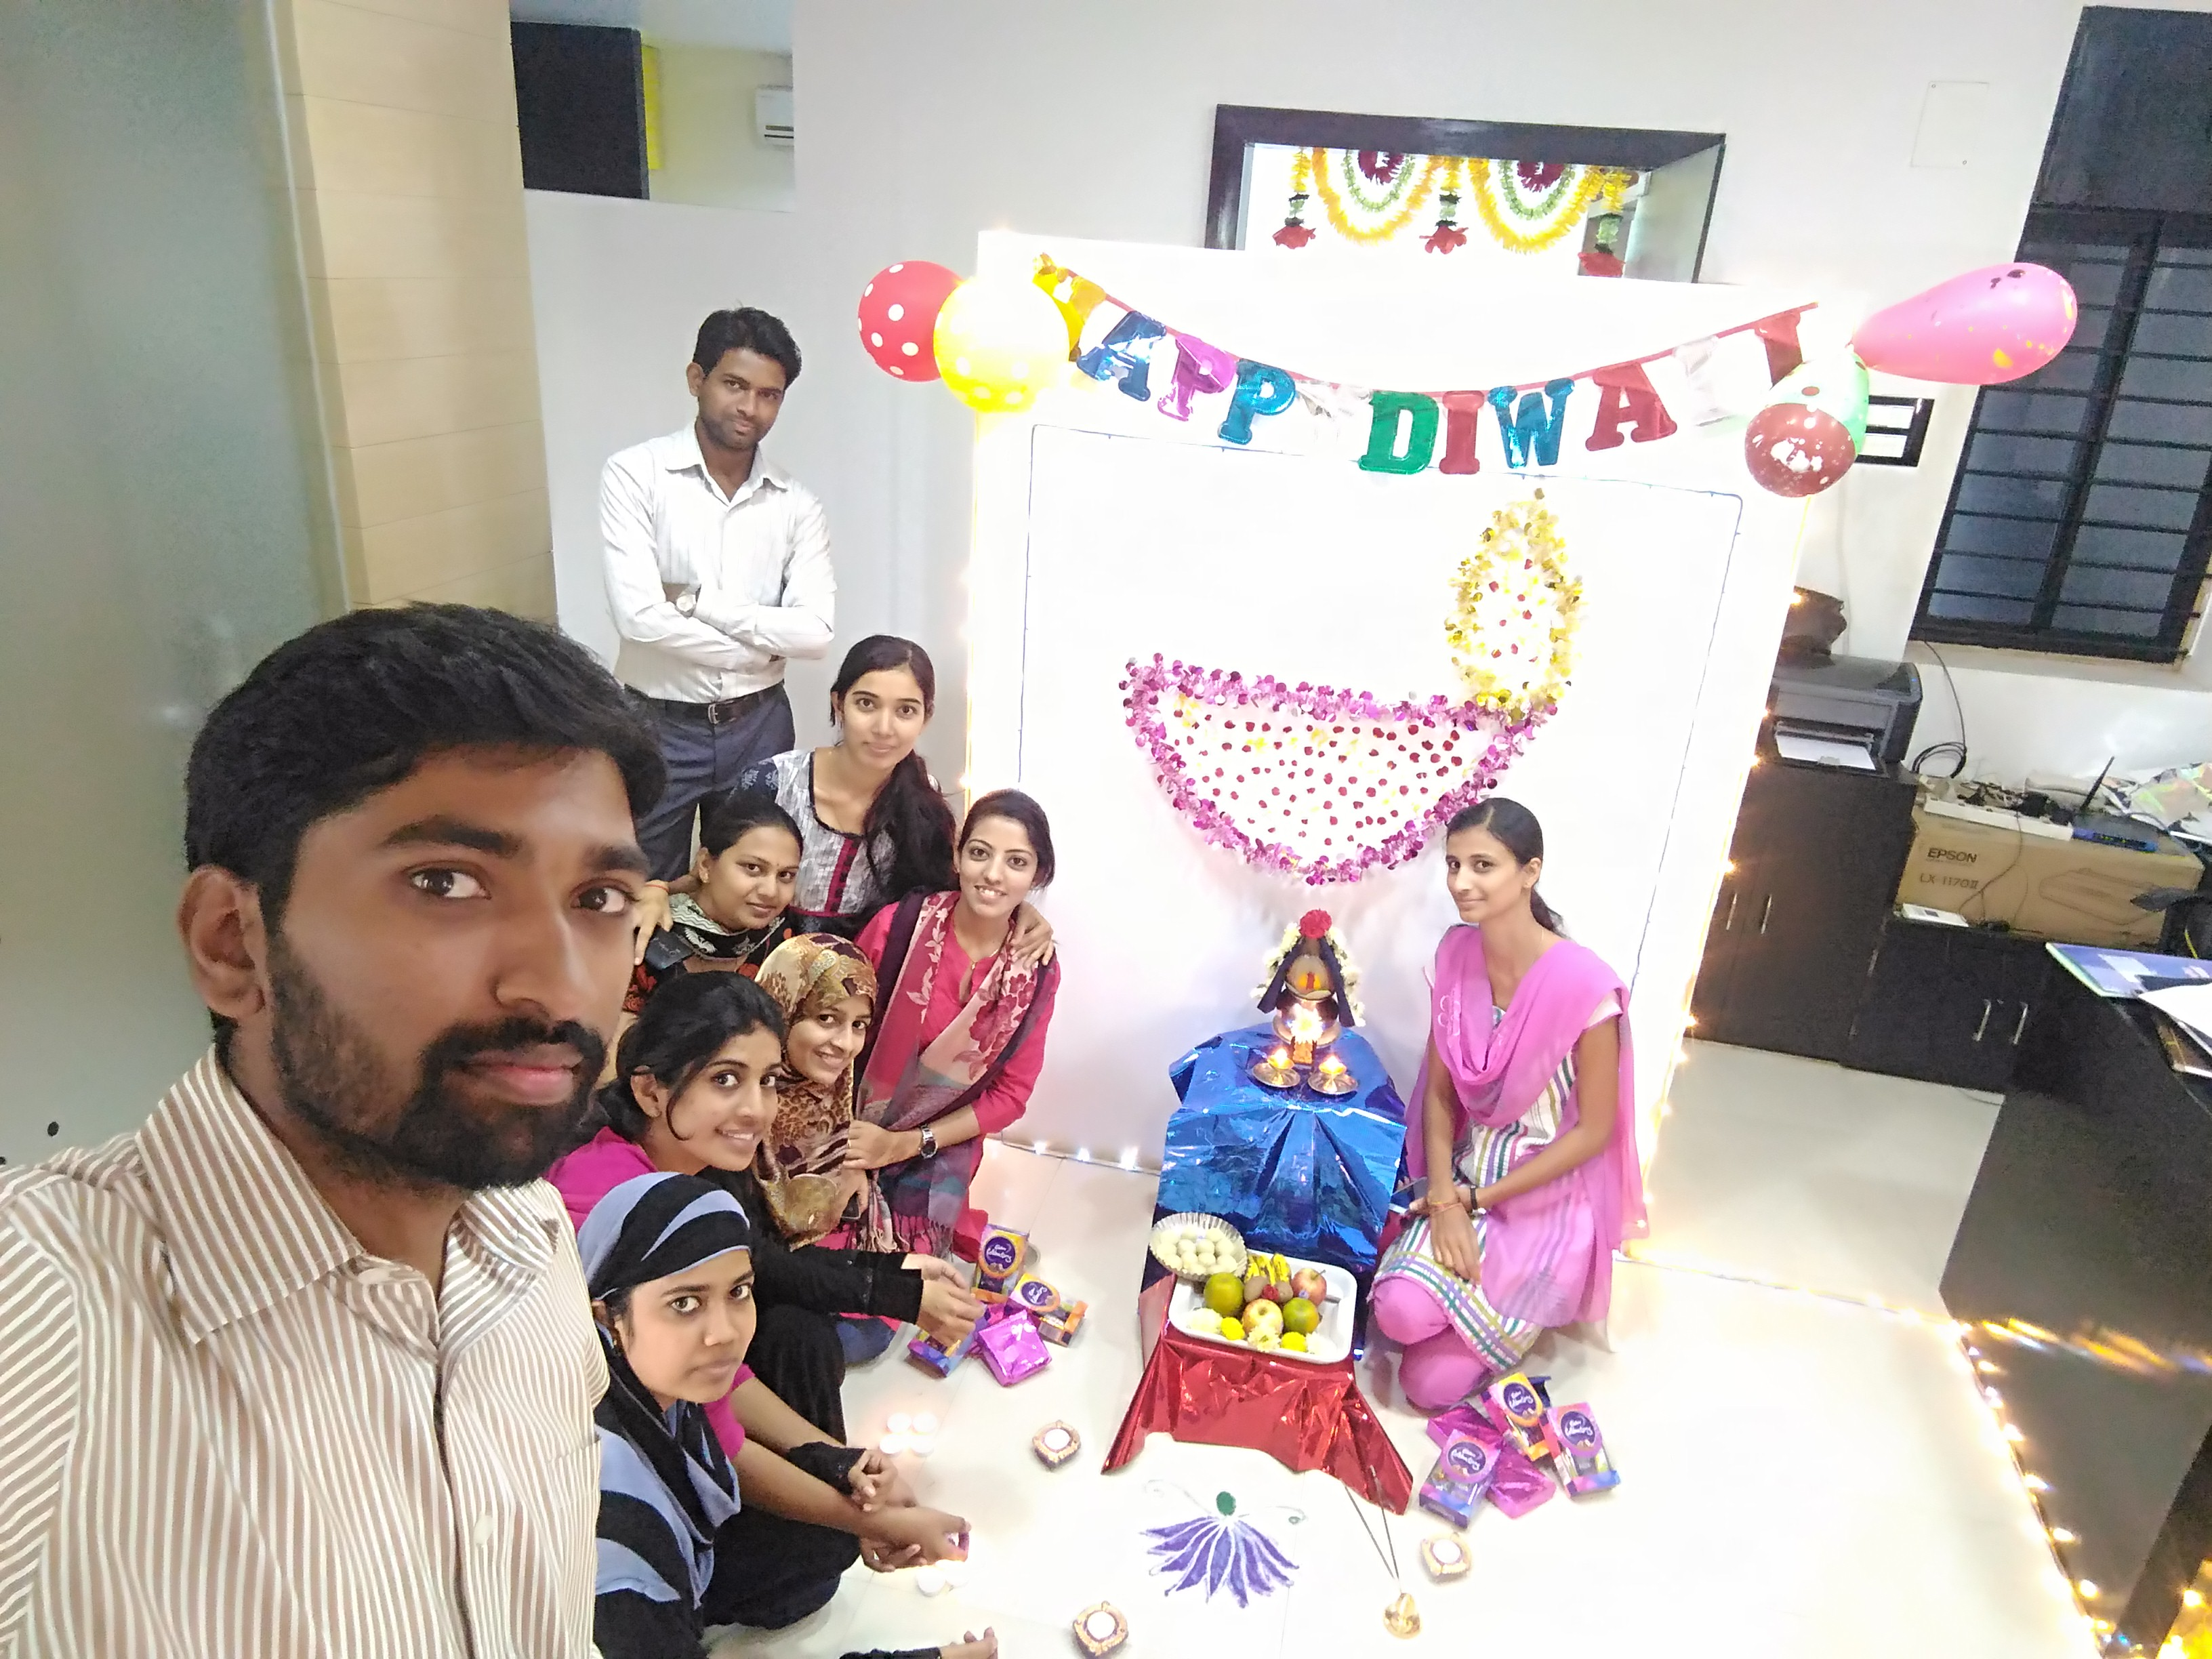 Diwali celebration in office